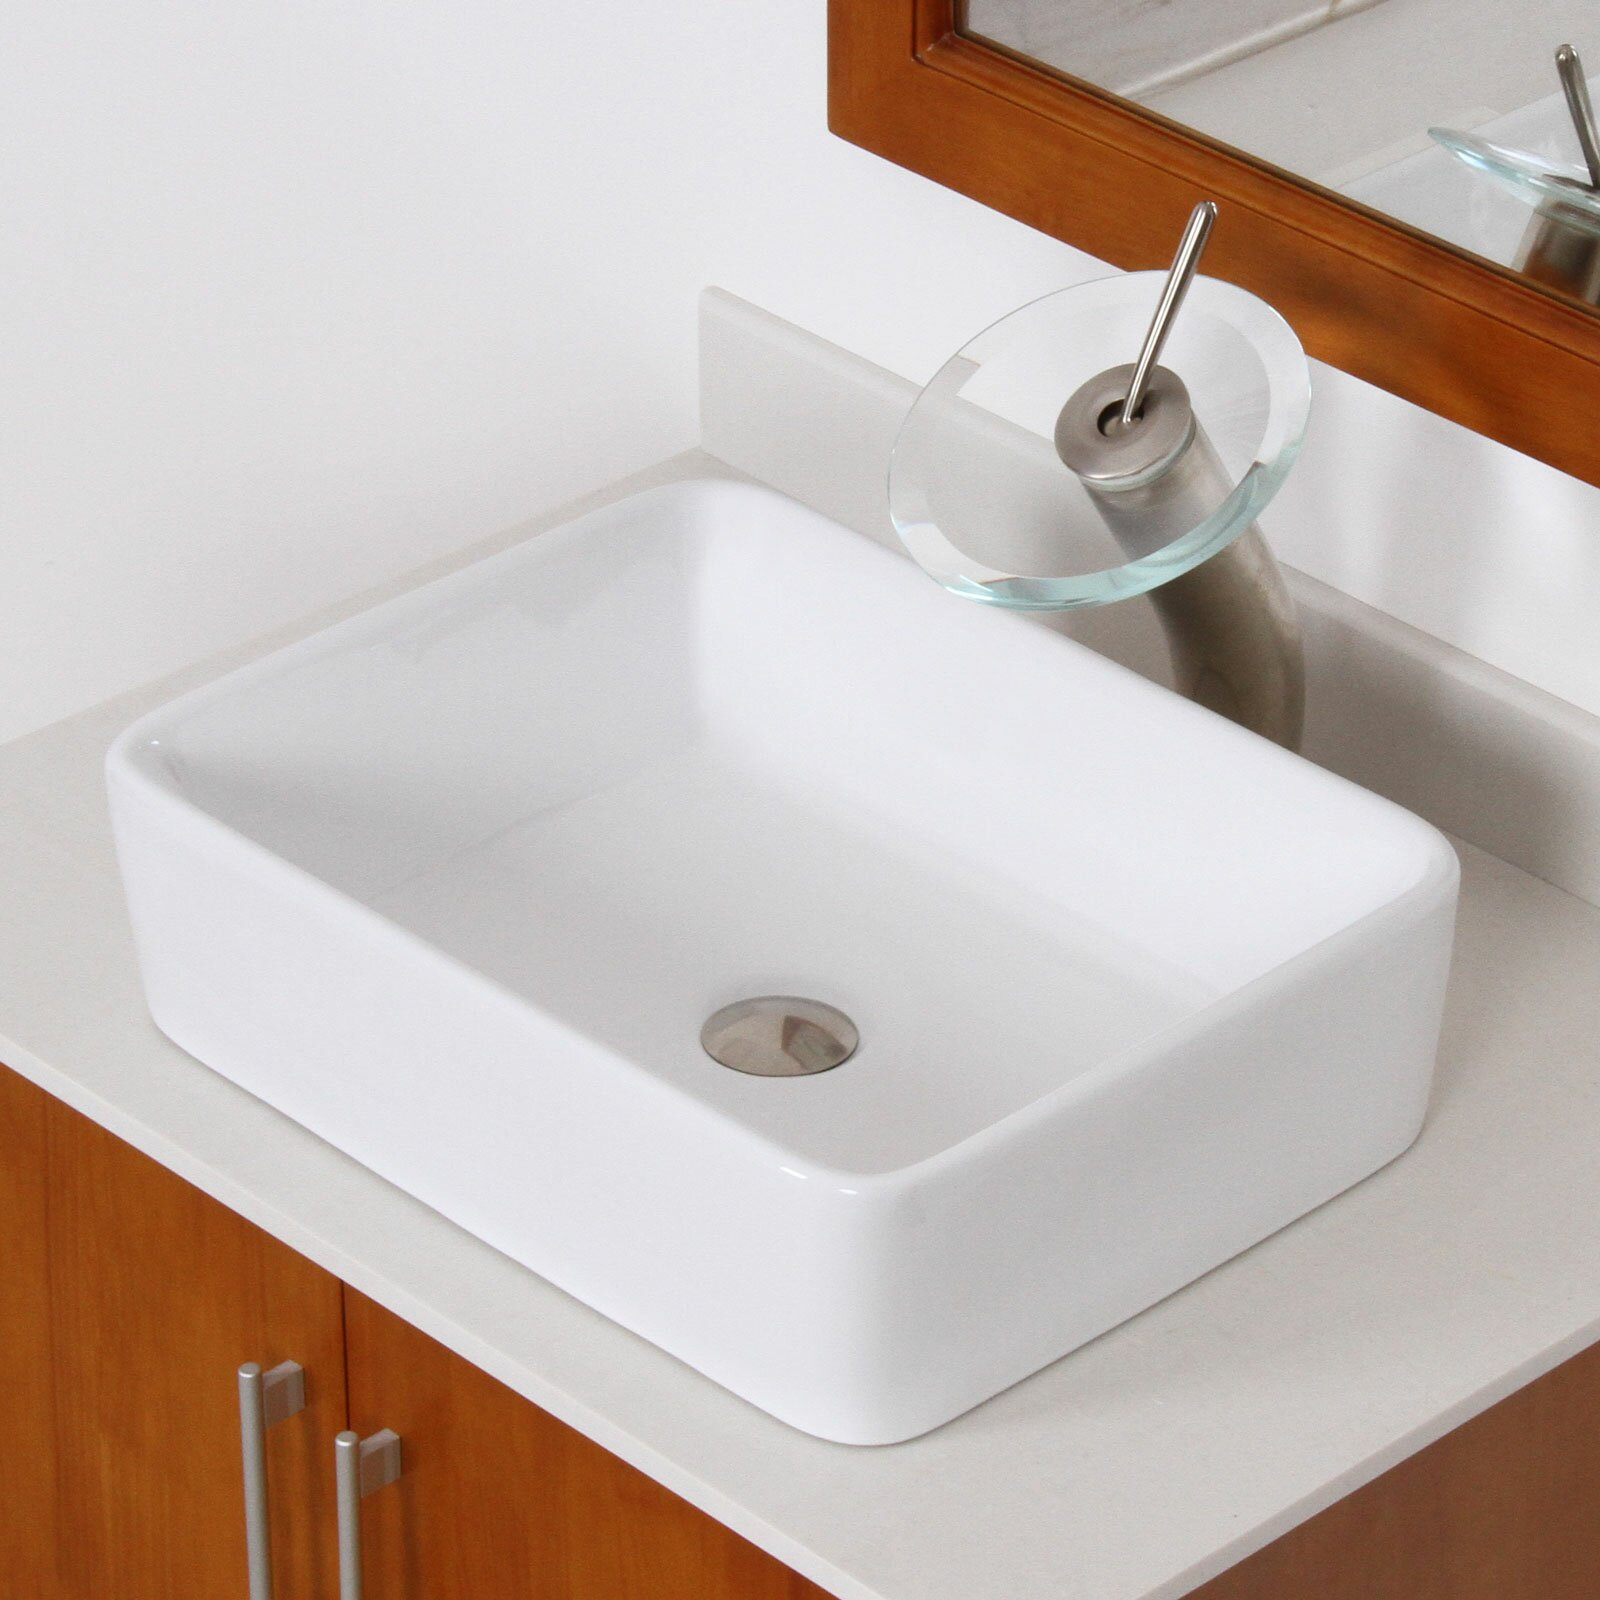 Rectangular Bathroom Sinks Elite Ceramic Rectangular Vessel Bathroom Sink Reviews Wayfair